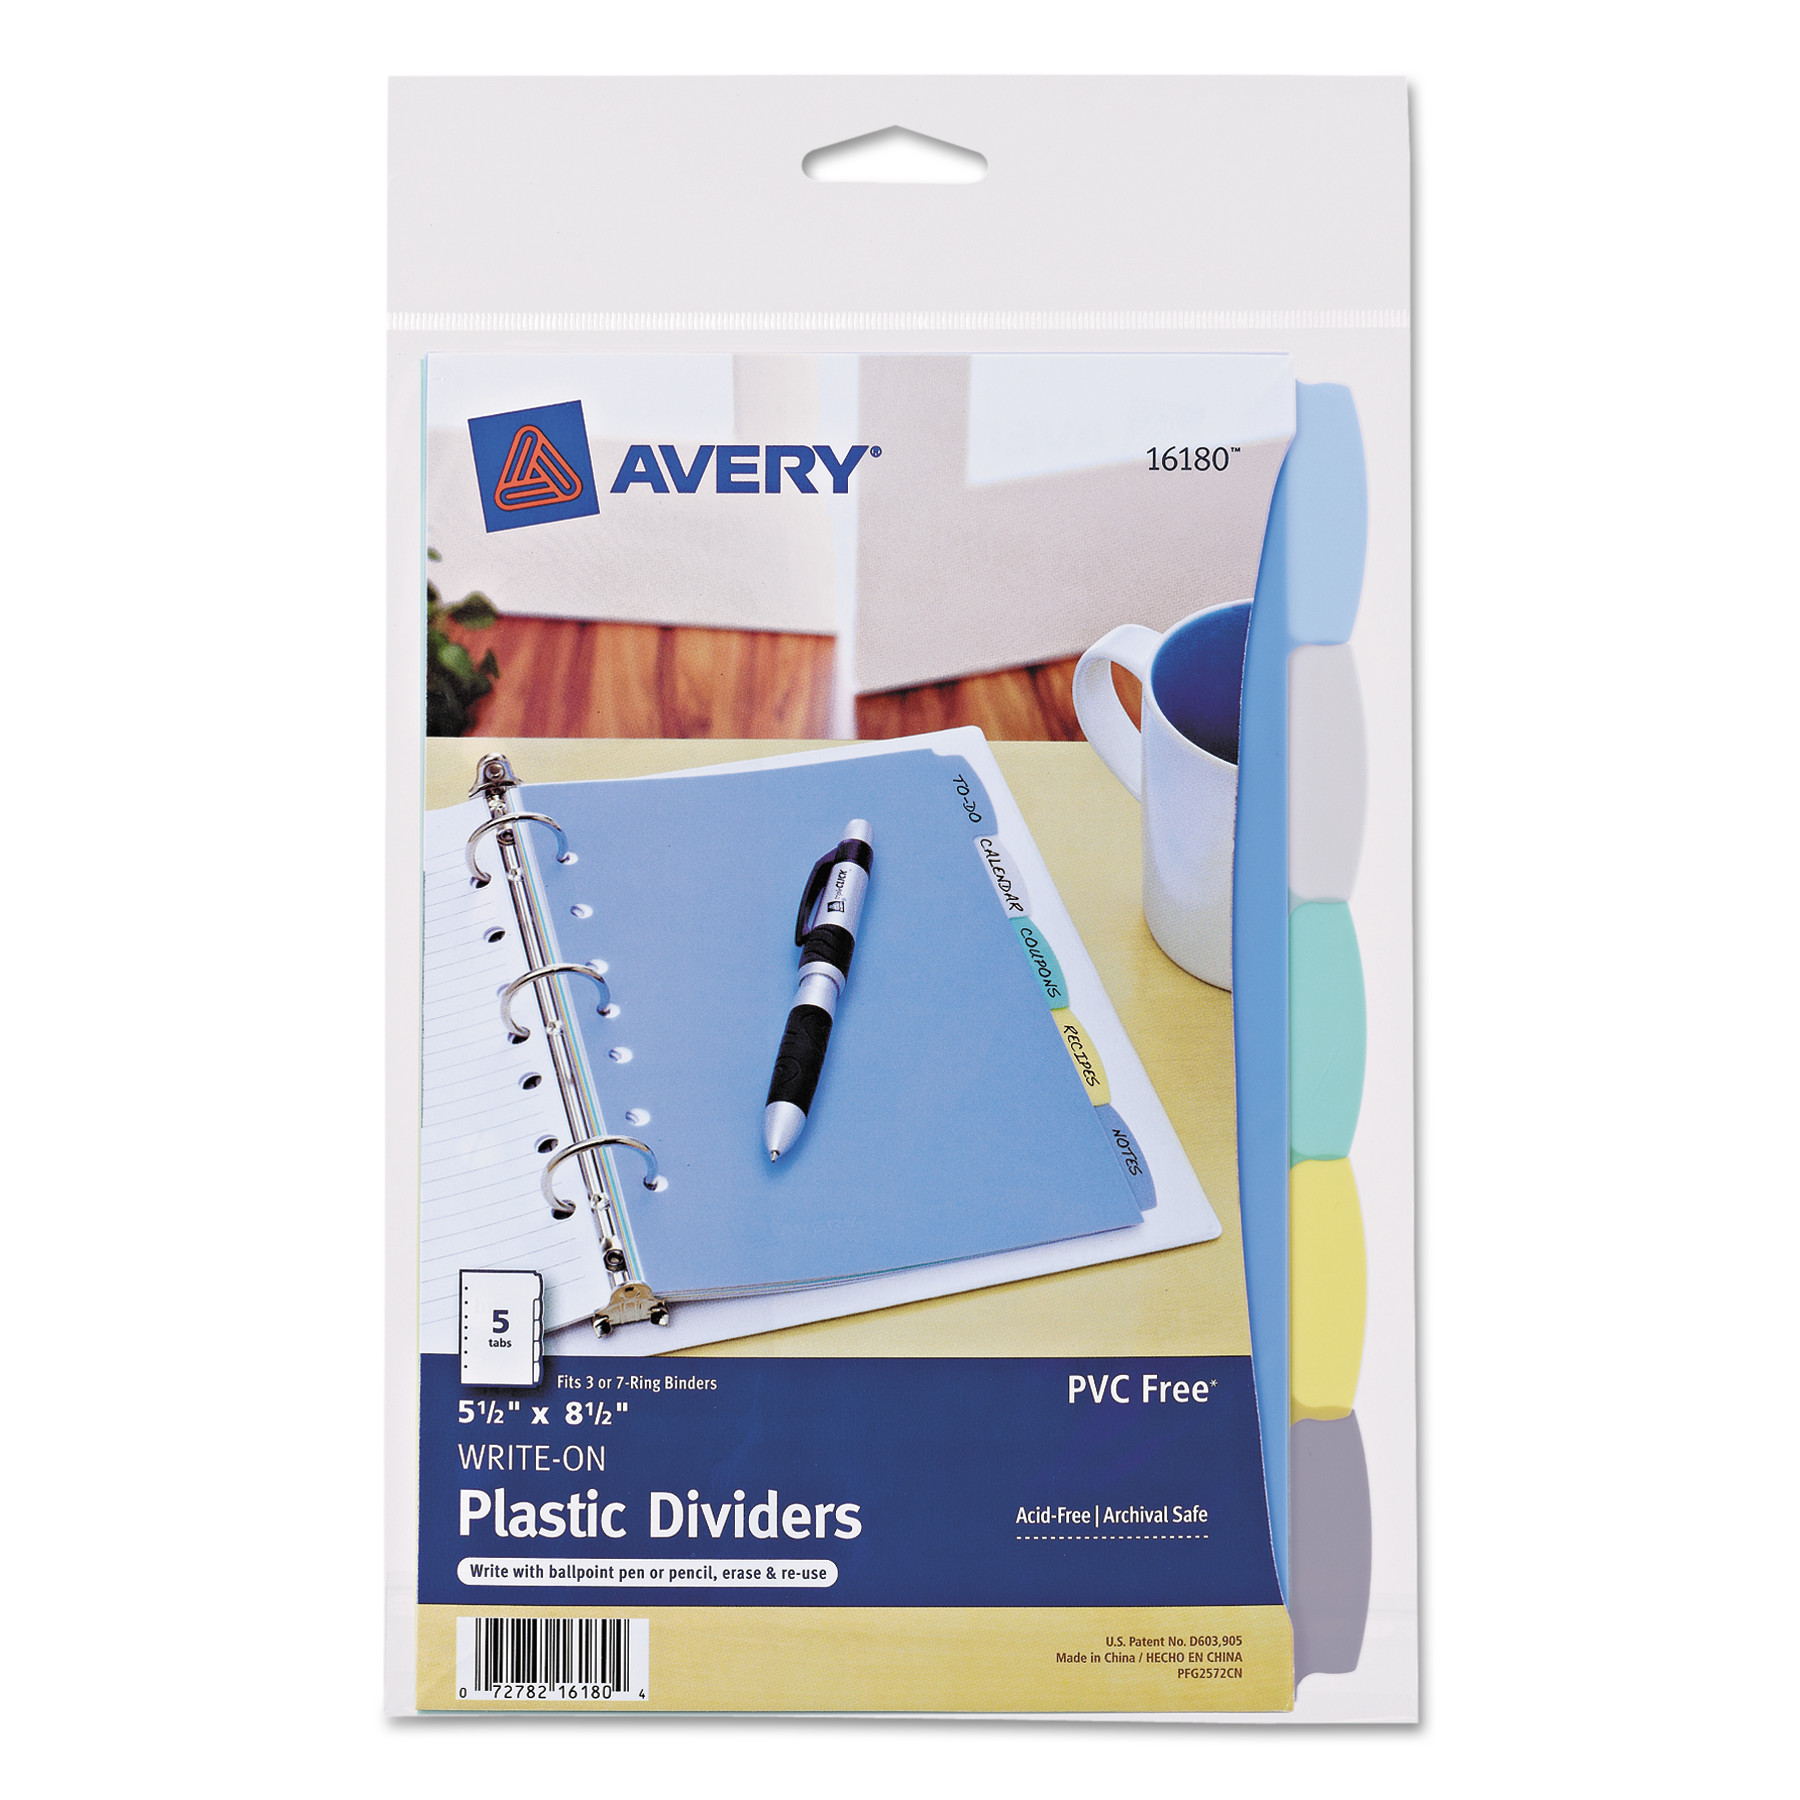 "Avery(R) Mini Durable Write-On Plastic Dividers 16180, 5-1/2"" x 8-1/2"", 5-Tab Set"